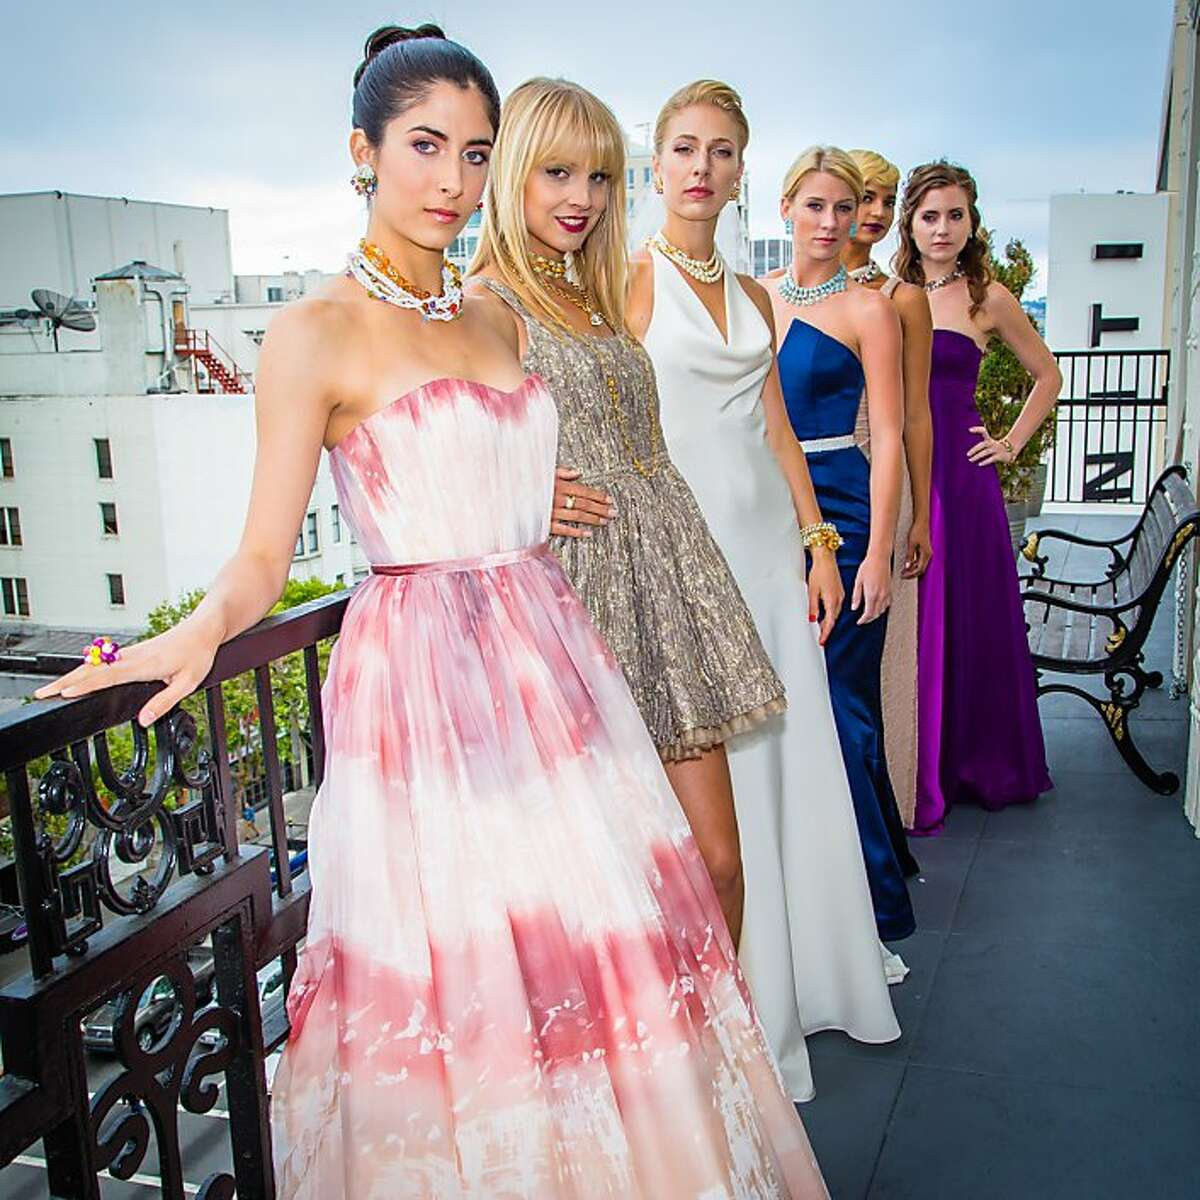 The Factory debuted its new eveningwear line with Britex with an intimate dinner at founder Jennifer Evans' Beaux Arts penthouse overlooking downtown San Francisco.